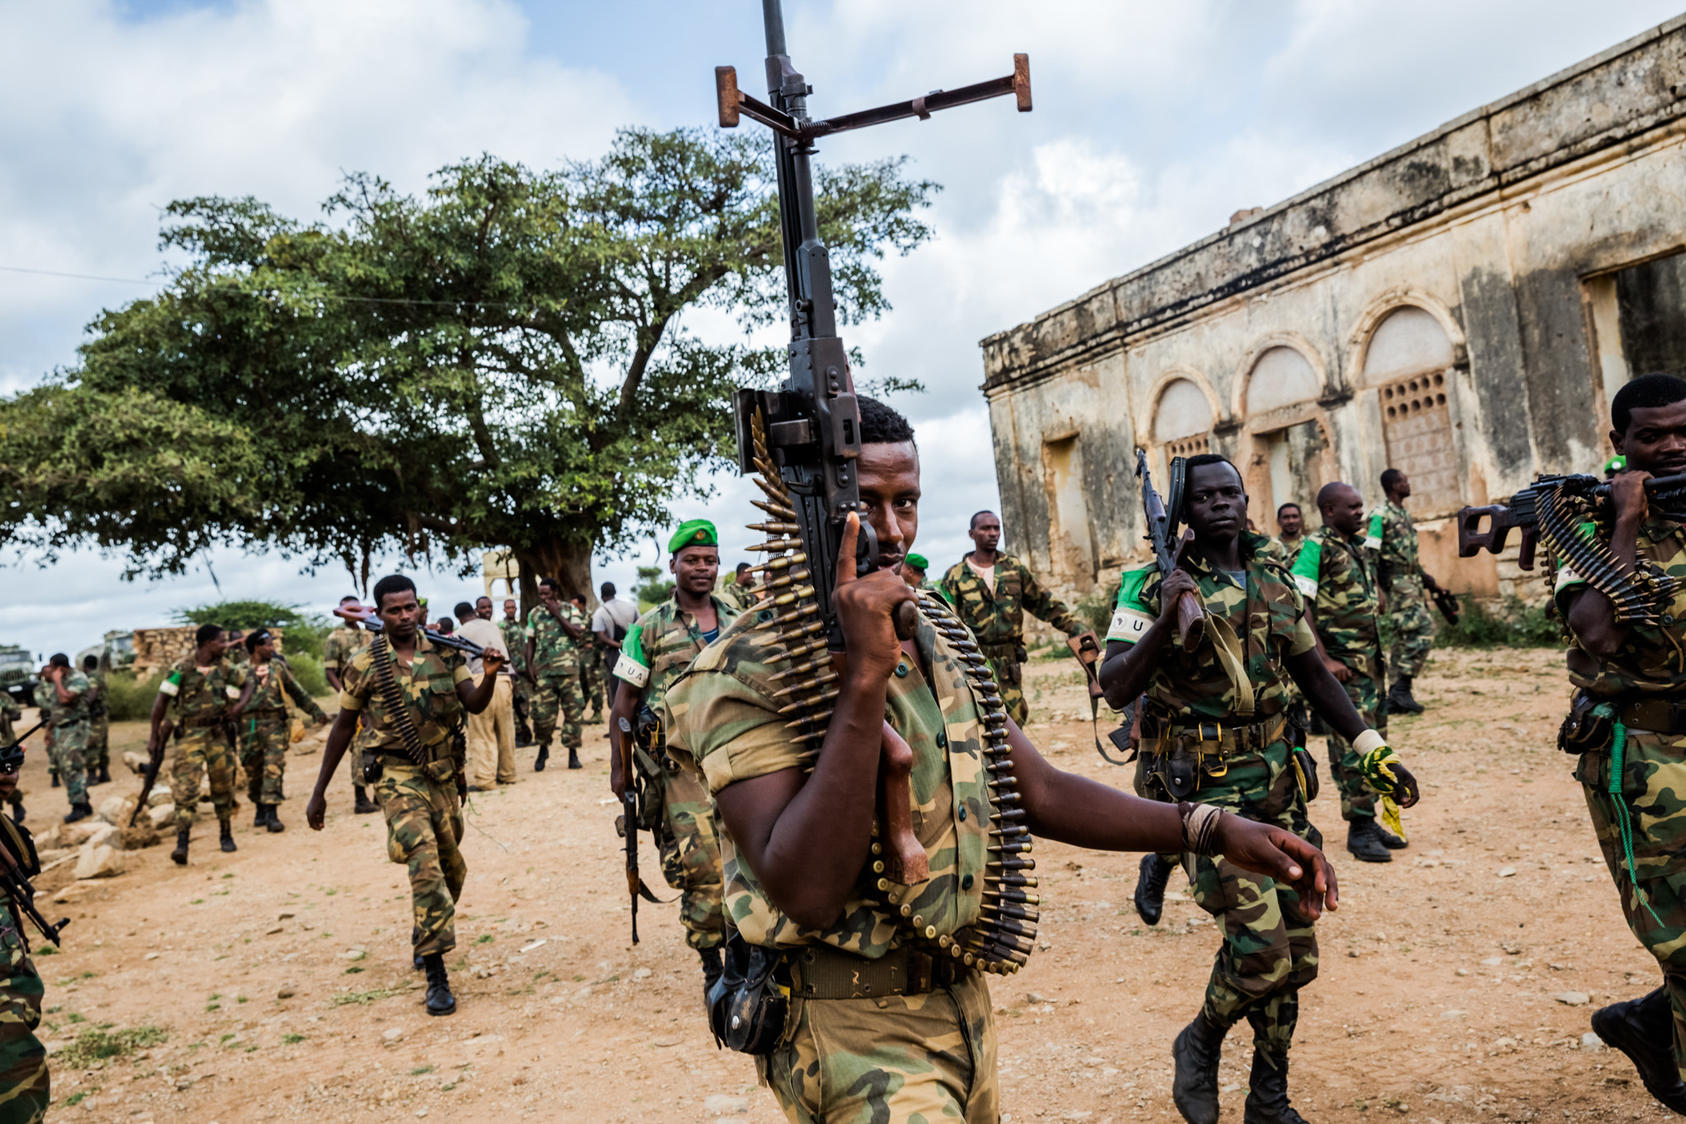 Ethiopian soldiers, part of the African Union peacekeeping mission in Somalia, escort a convoy of trucks carrying food aid in Baidoa, Somalia, June 10, 2014. In a recent attack in Somalia in early 2016, al-Shabab militants massacred as many as 100 Kenyan soldiers in a peacekeeping mission, seizing their equipment. The attack could mark a turning point for the Shabab, one of Africa's most violent militant groups. (Daniel Berehulak/The New York Times)